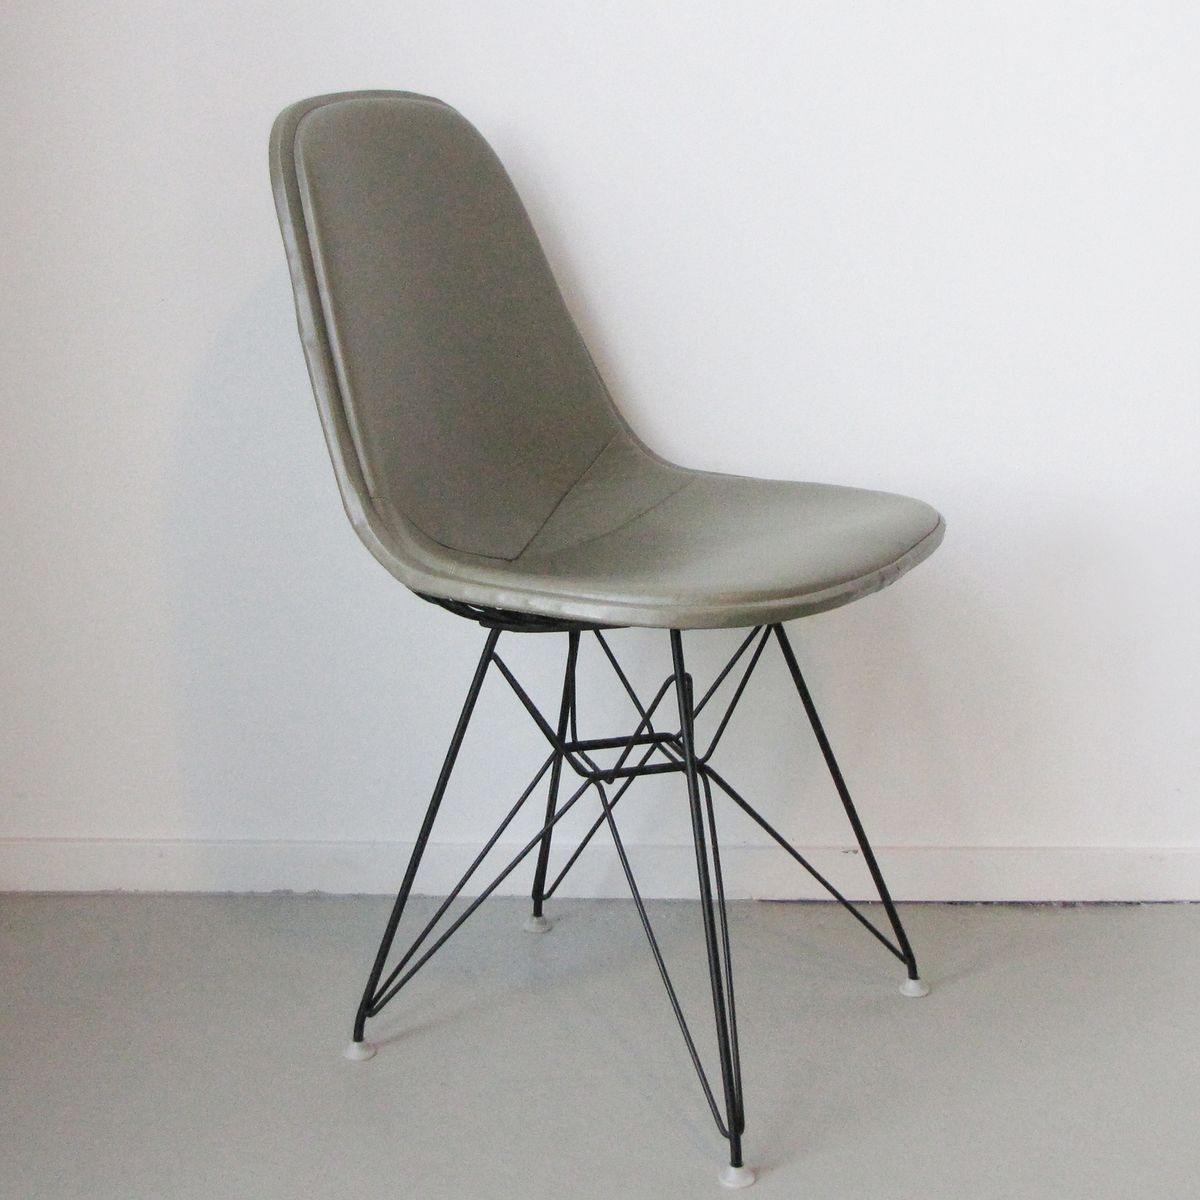 Dkr 1 chair by charles ray eames for herman miller for sale at pamono - Eames chair herman miller ...